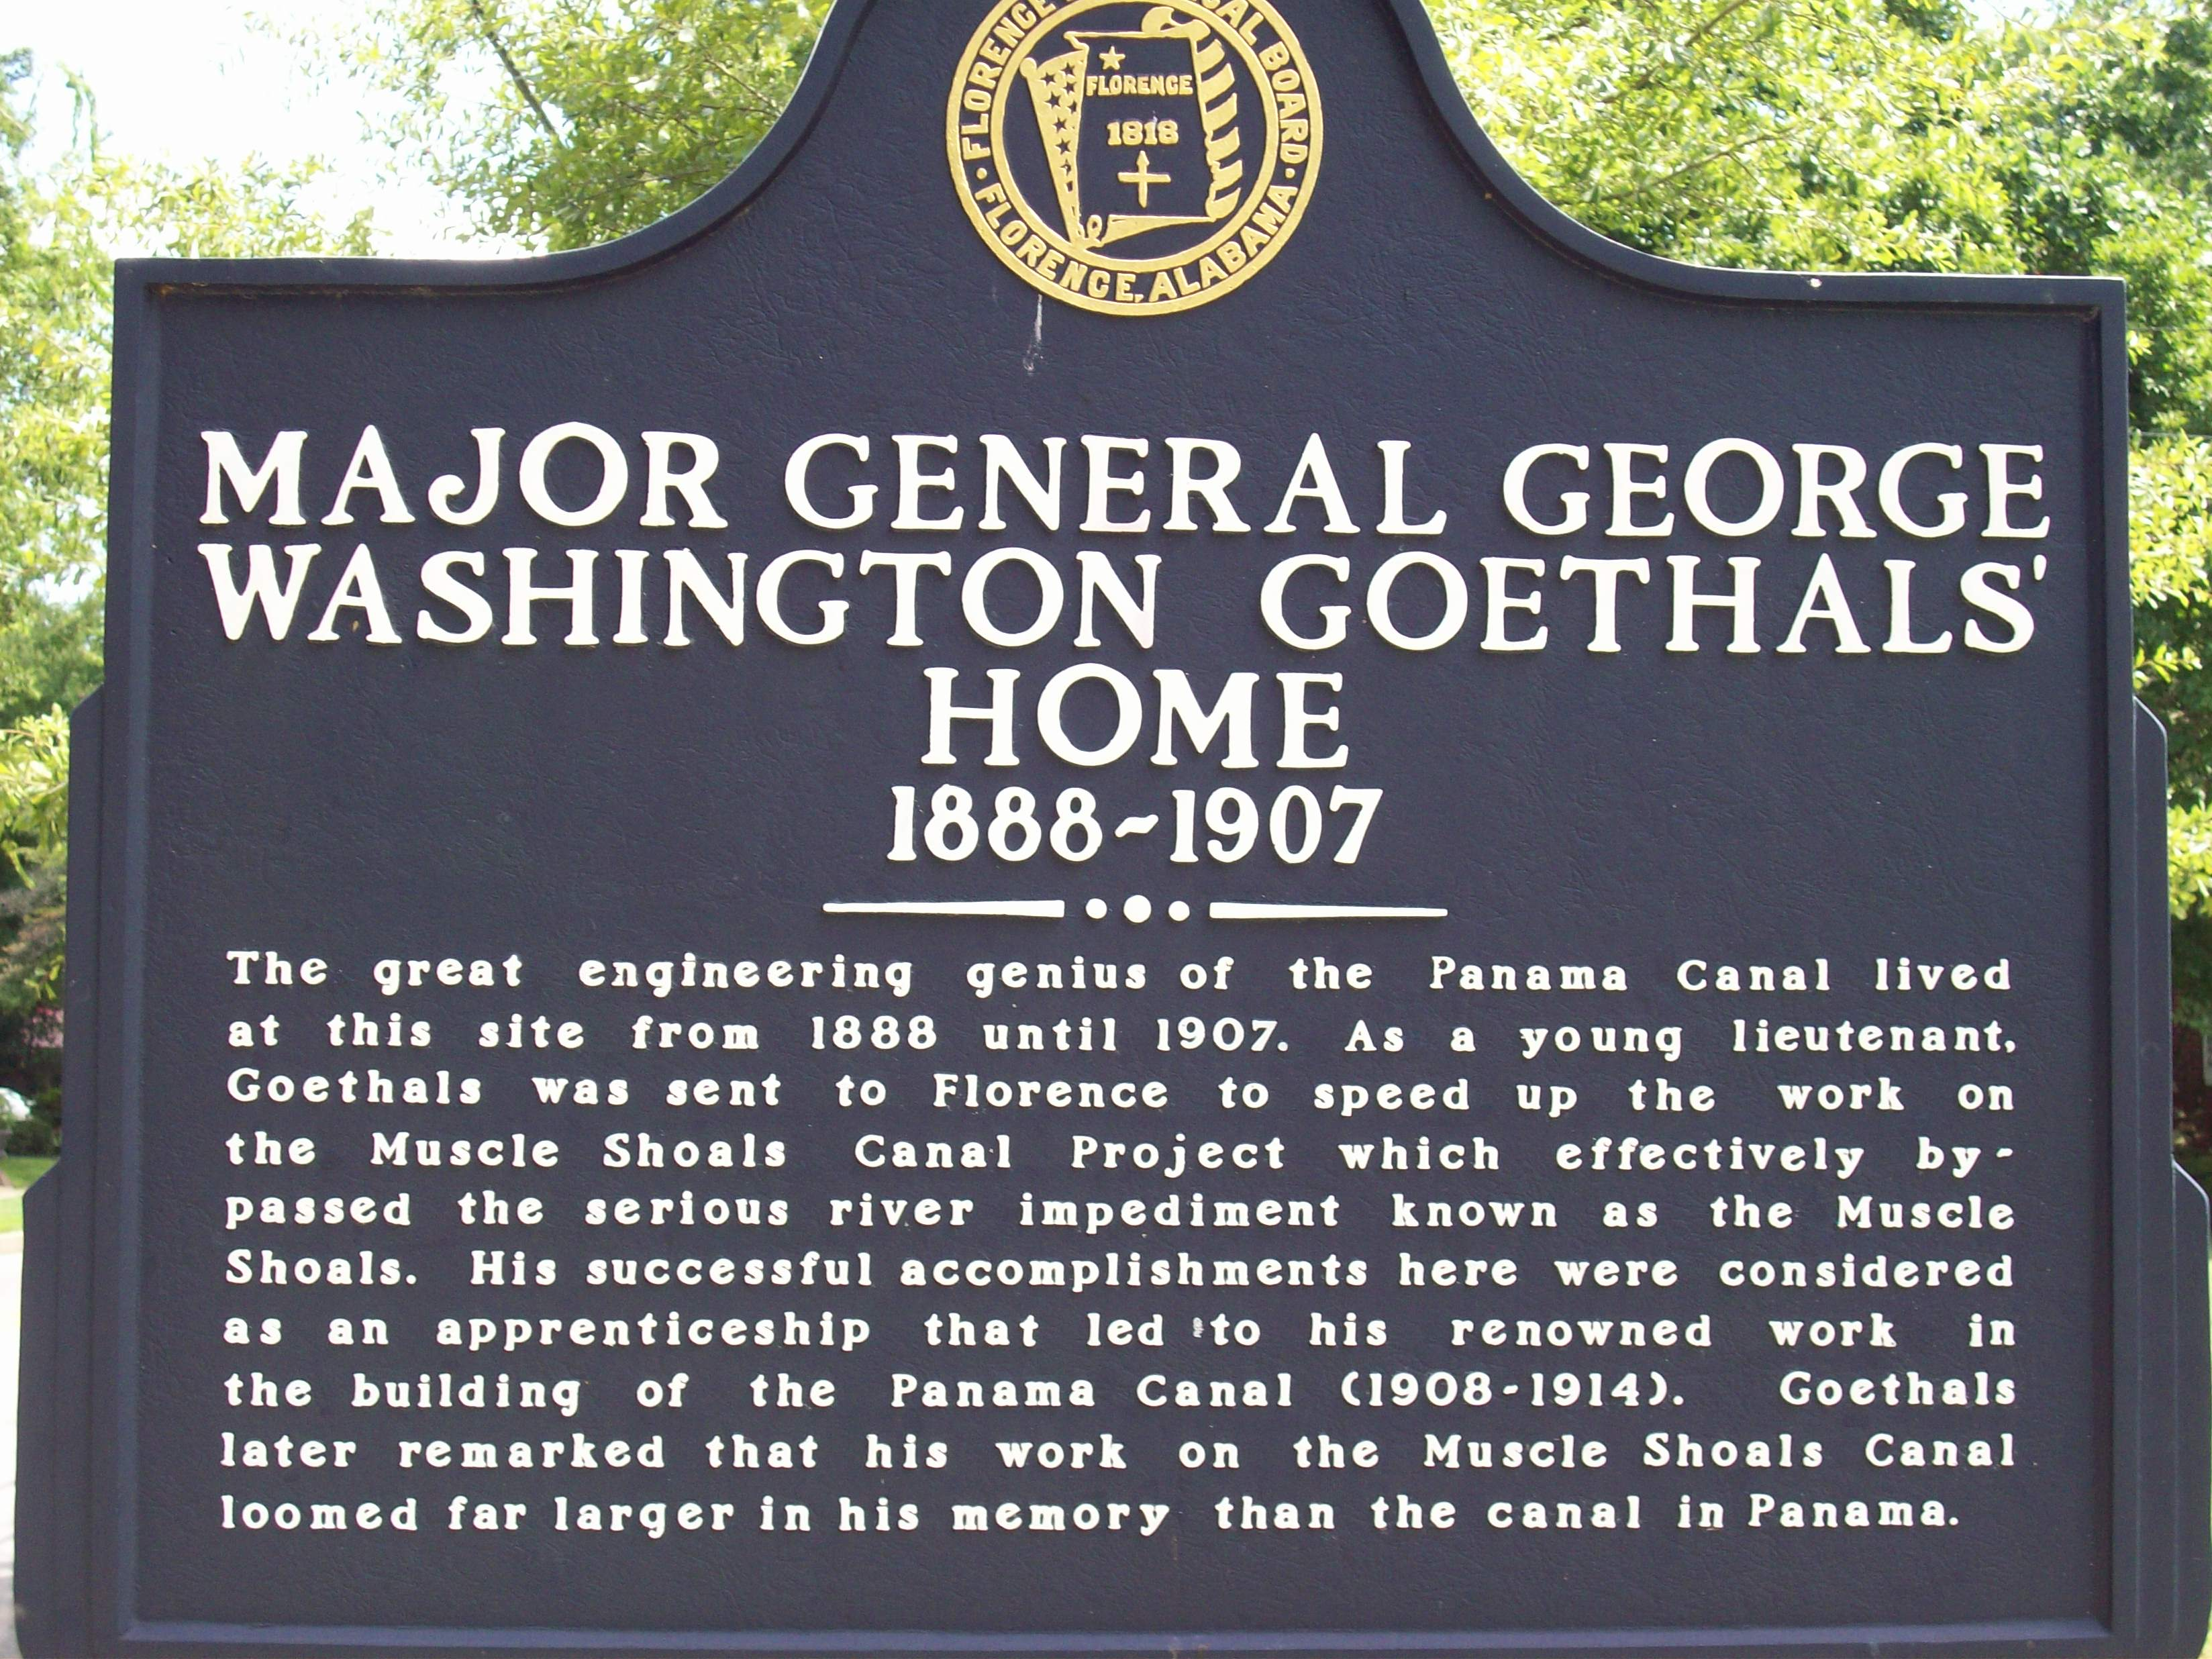 Major General George Washington Goethals' Home – 1888-1907